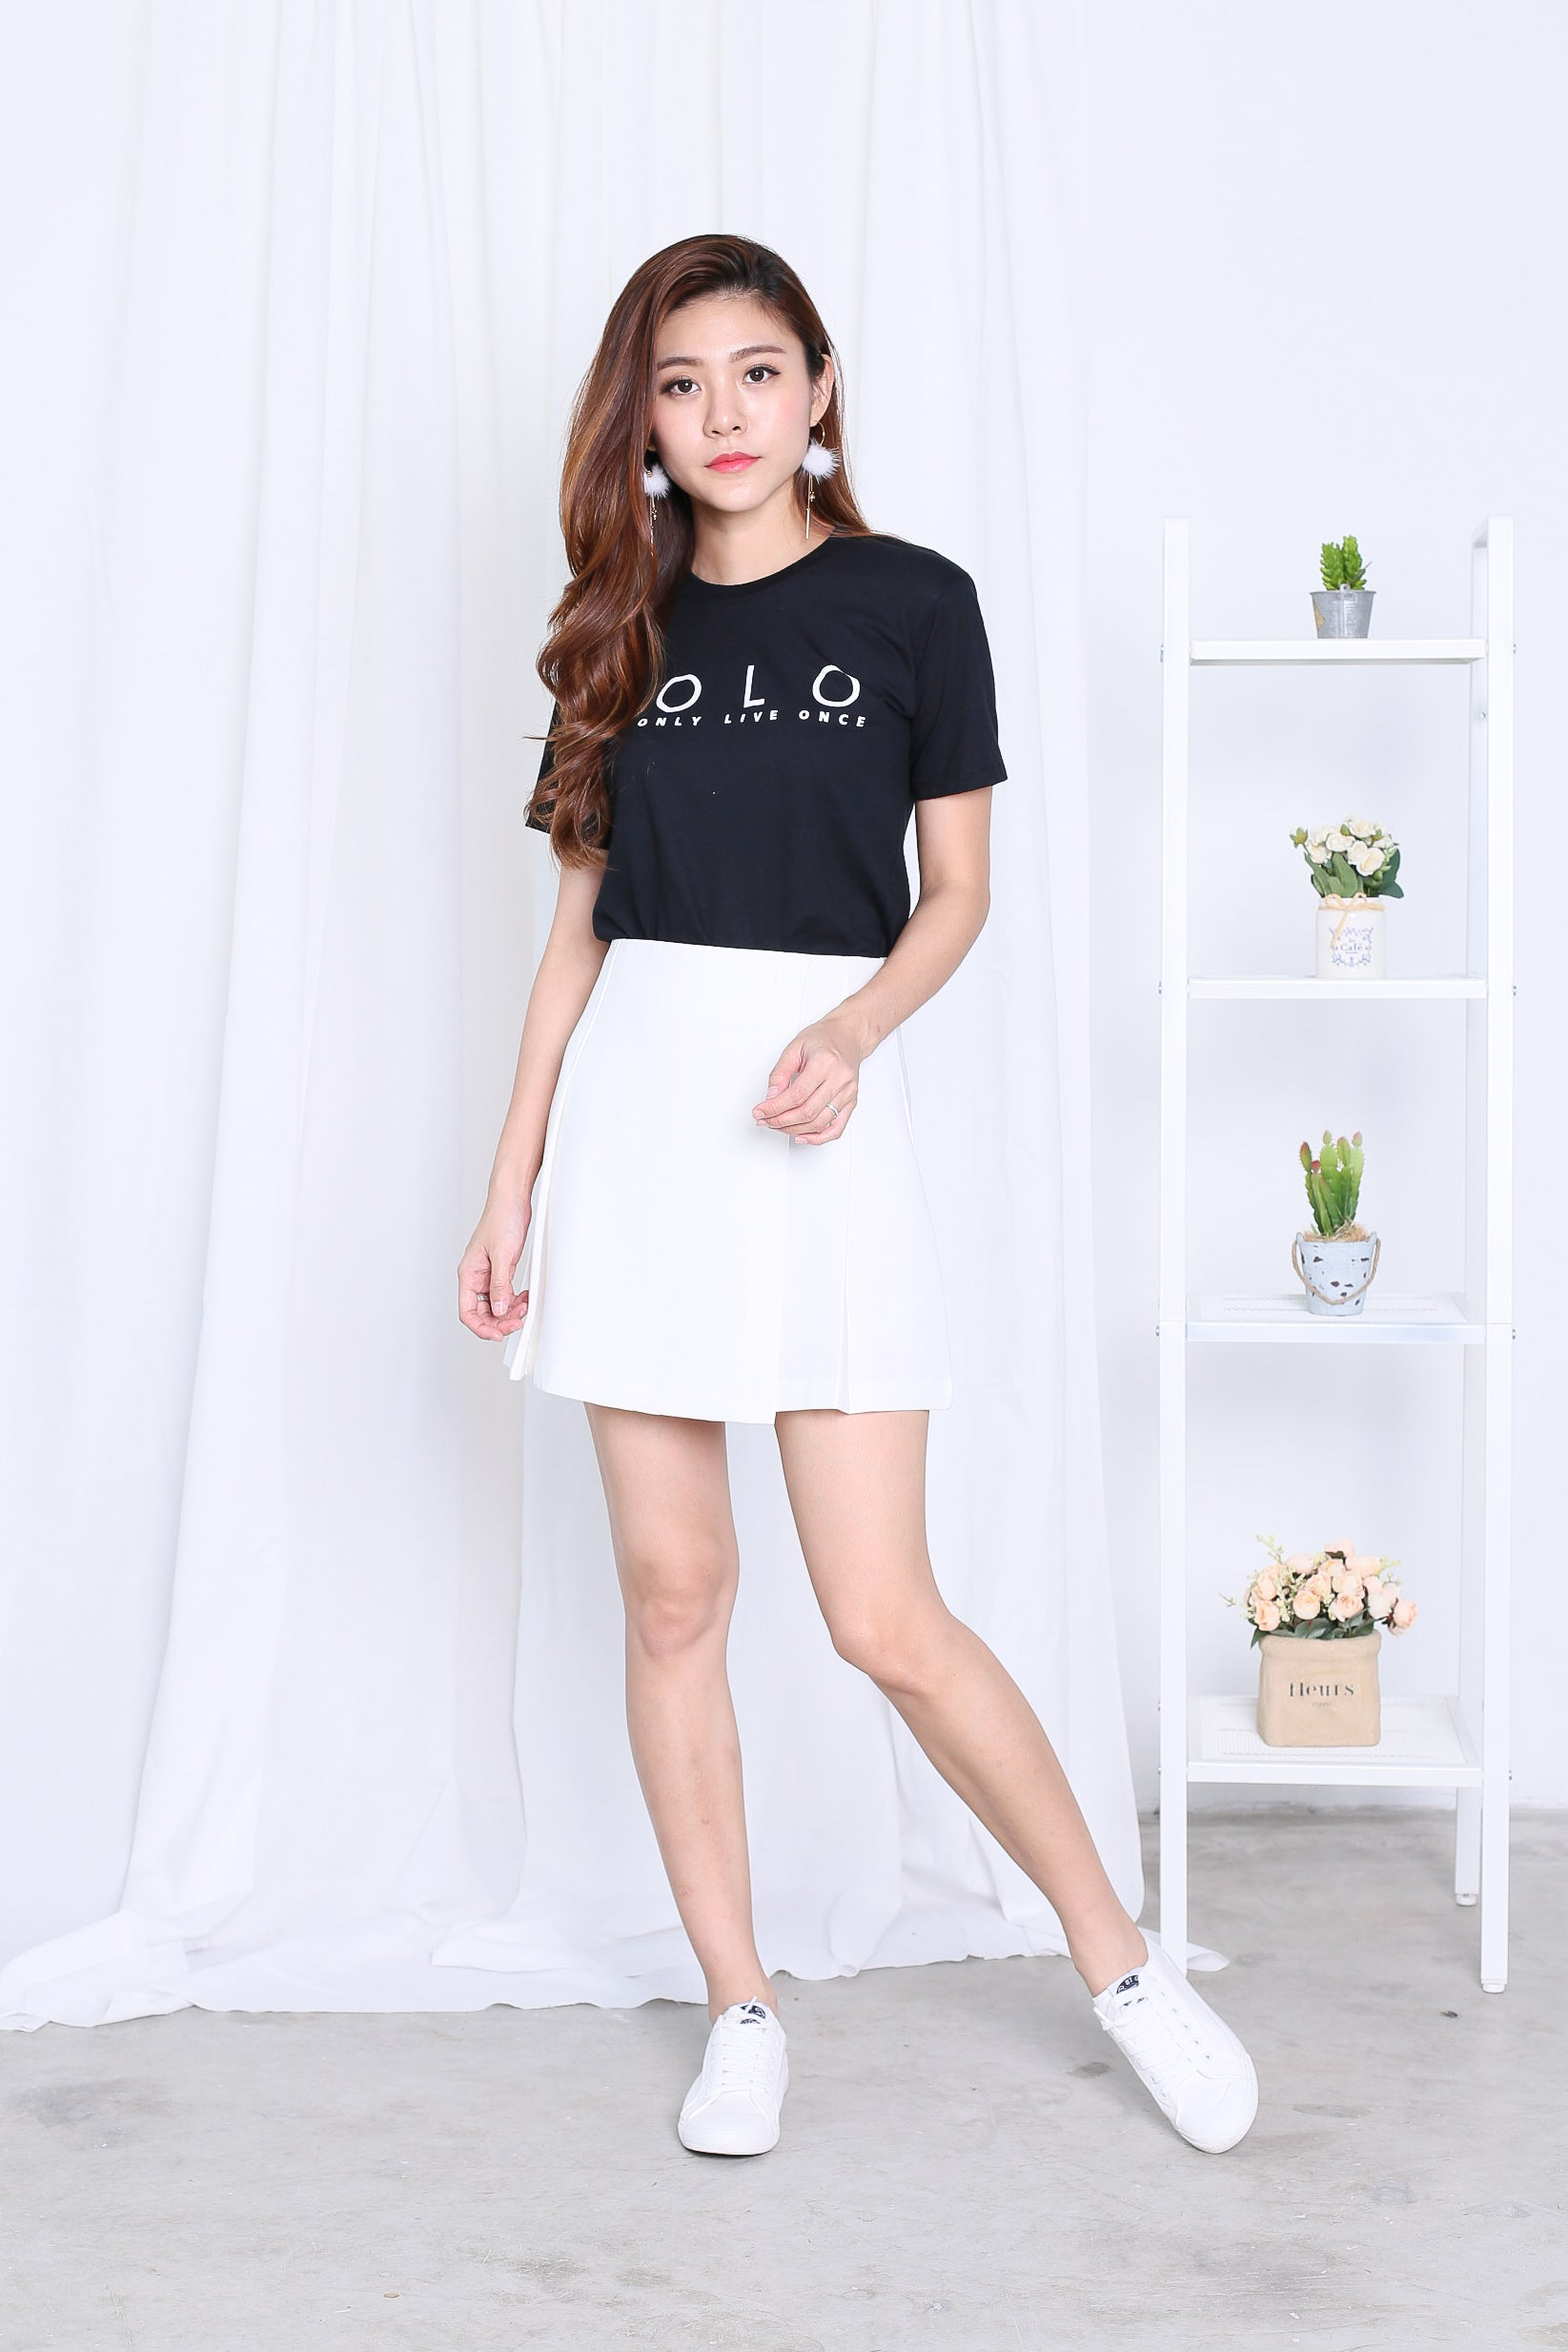 YOLO TEE IN BLACK